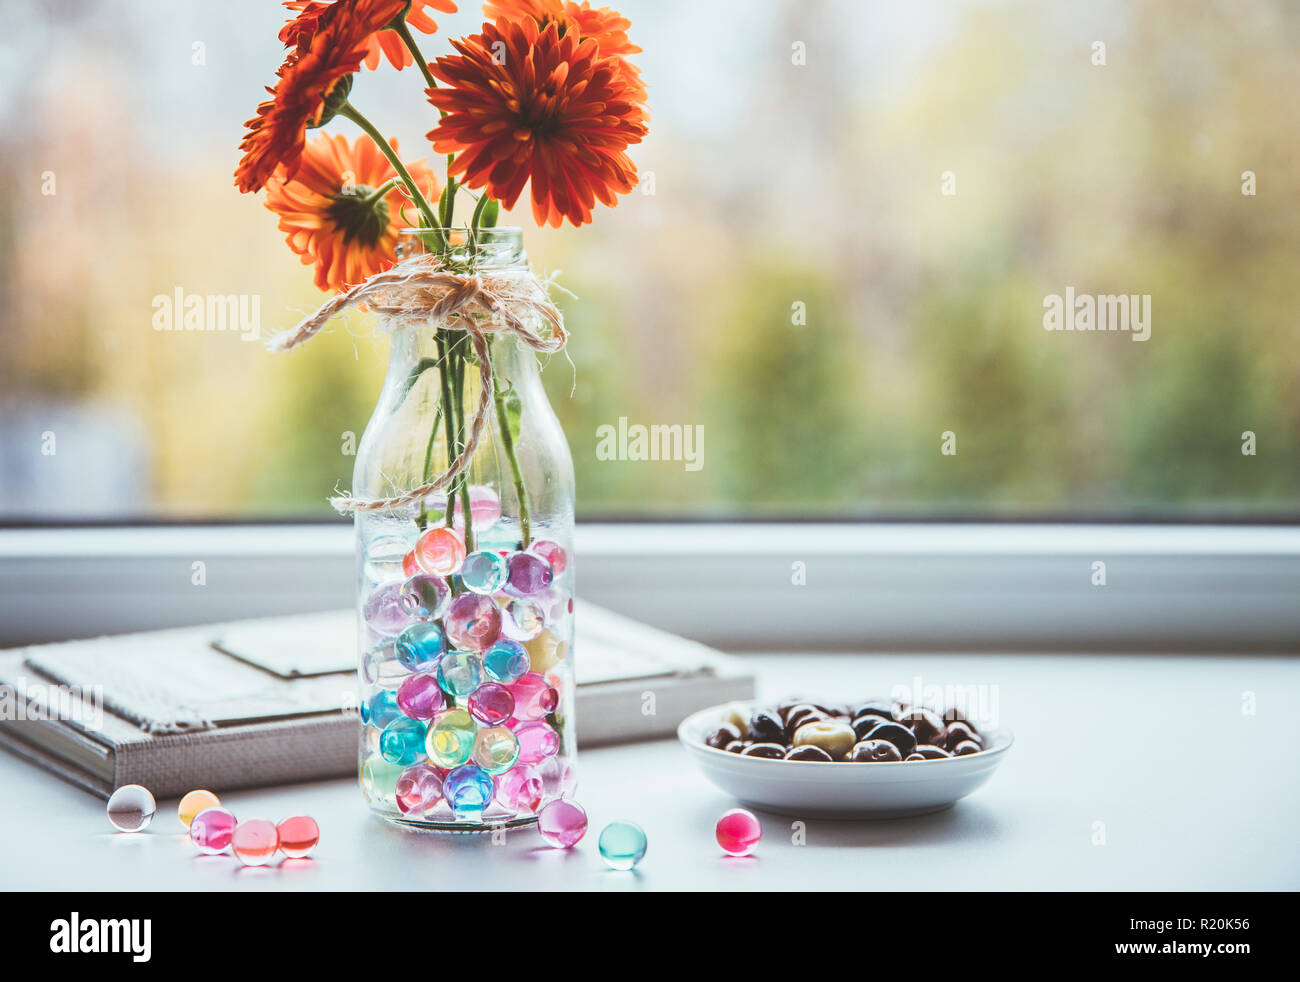 Water crystal gel or water beads is any gel which contains a large amount of water. Different color fun jelly water balls in flower vase in kitchen. Stock Photo